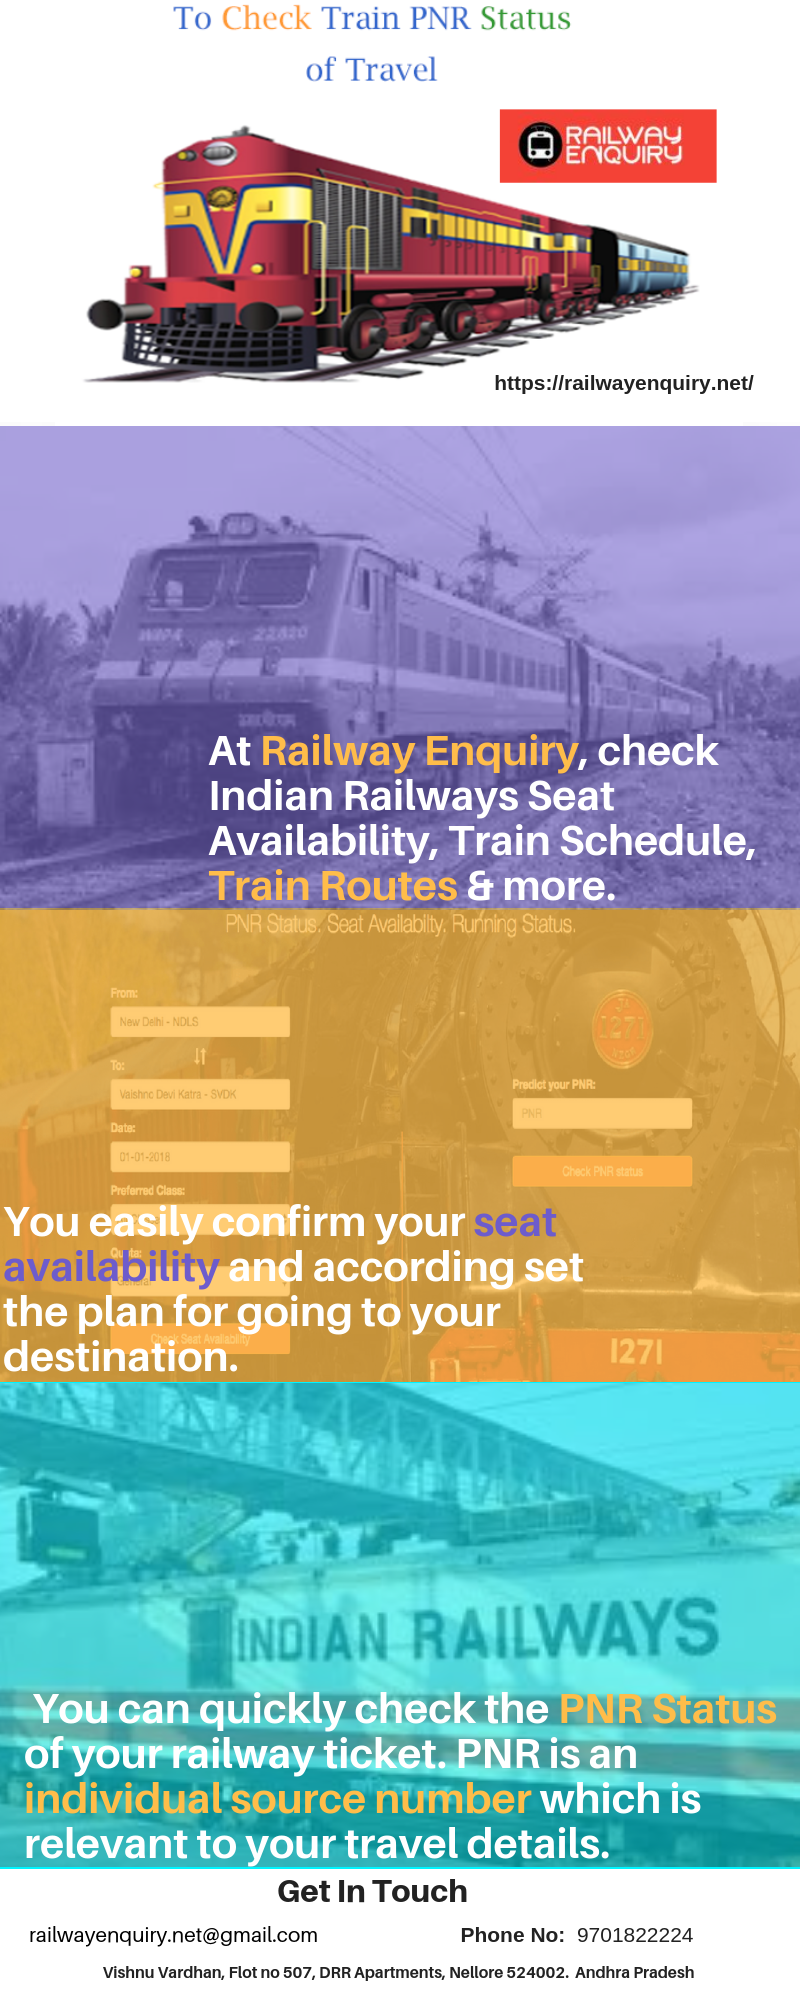 Check Railway PNR status online on Railway Enquiry  Know about the